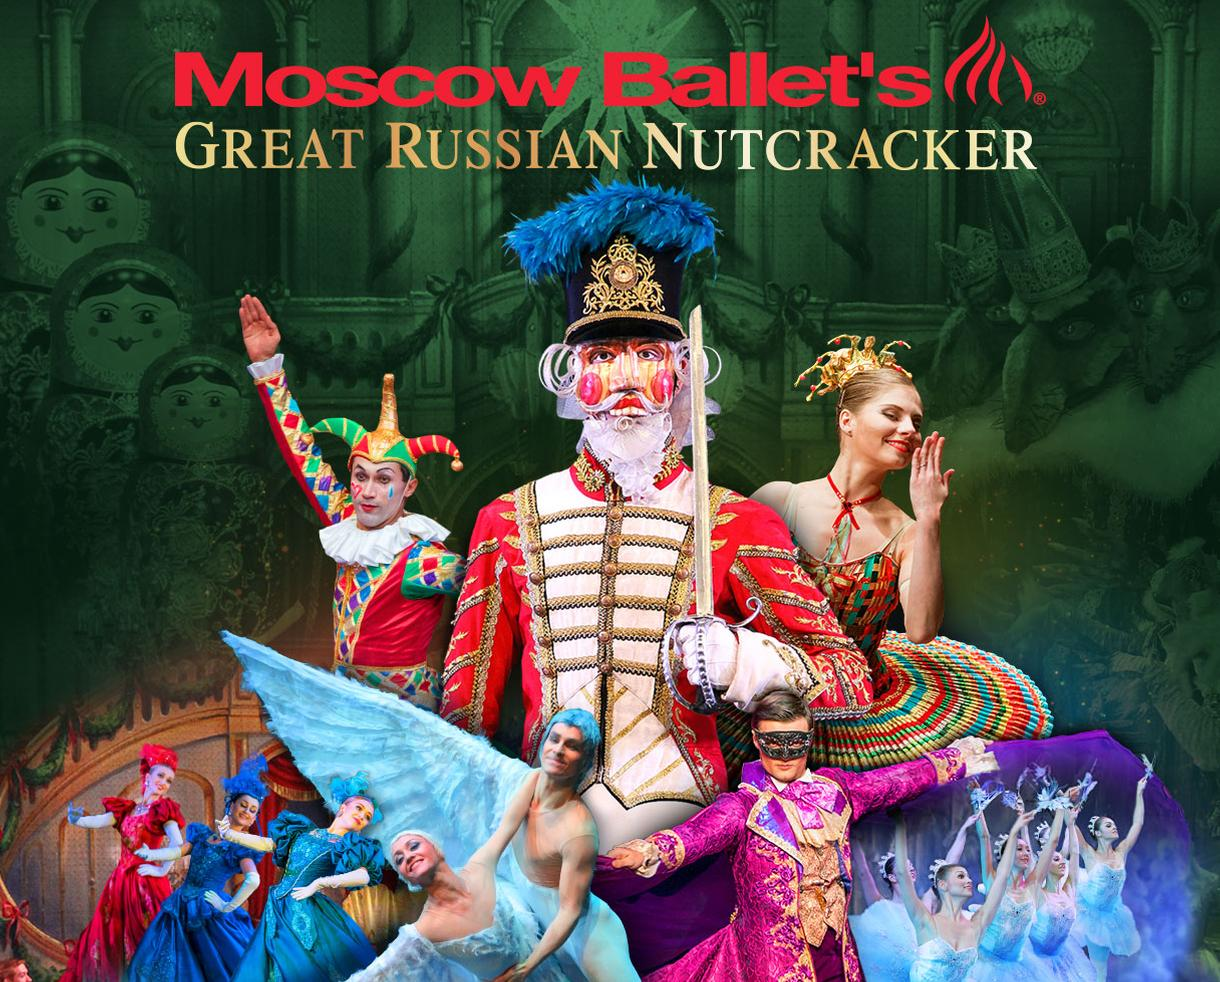 The Moscow Ballet's Great Russian Nutcracker at The Flint Center for the Performing Arts at De Anza College